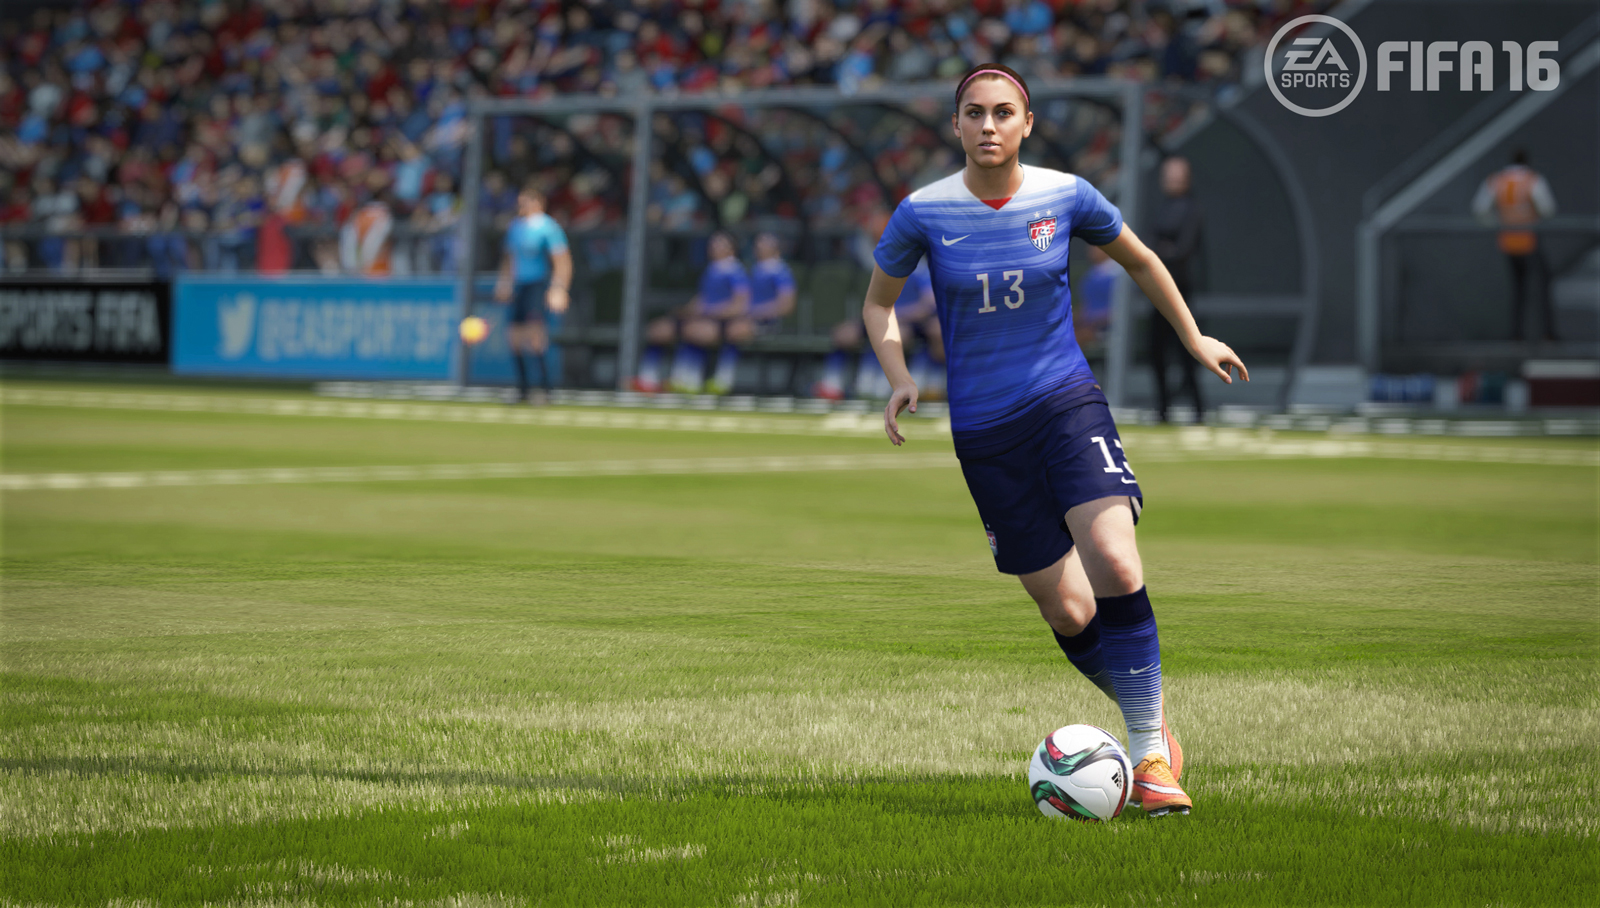 FIFA 16 Will Launch on September 22, Includes Women's ...